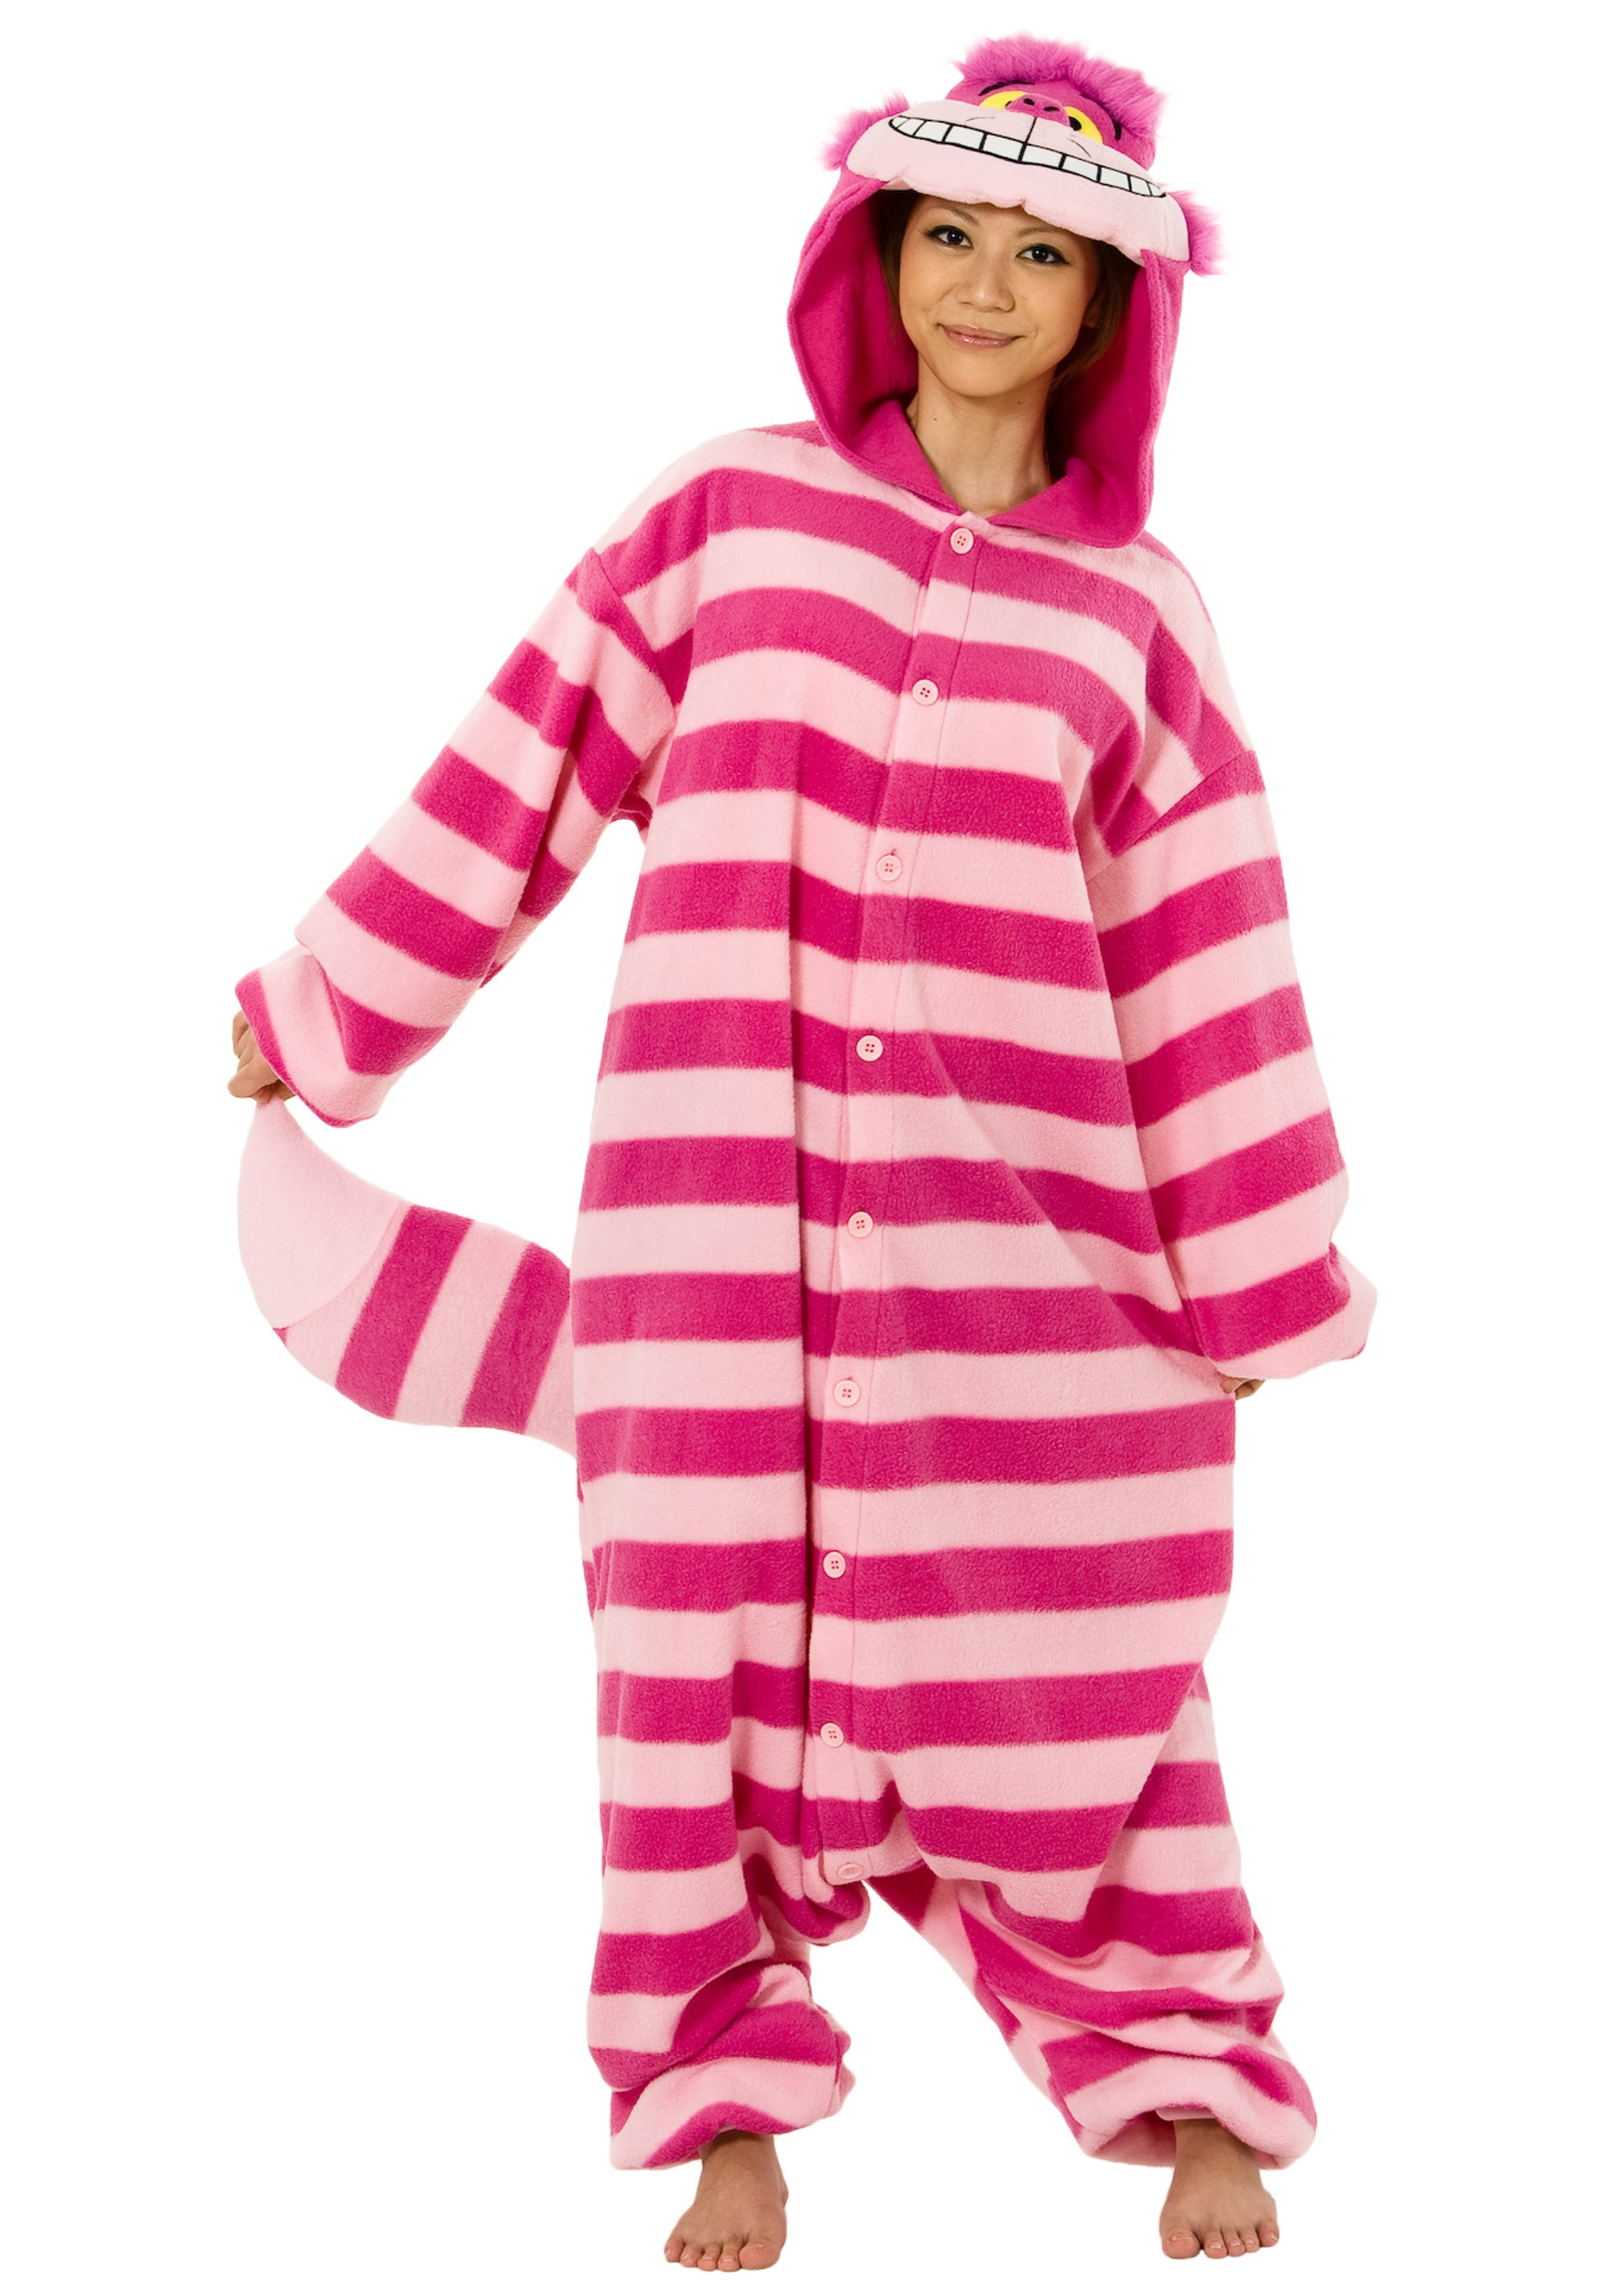 7d592797acb7 Cheshire Cat Pajama Costume